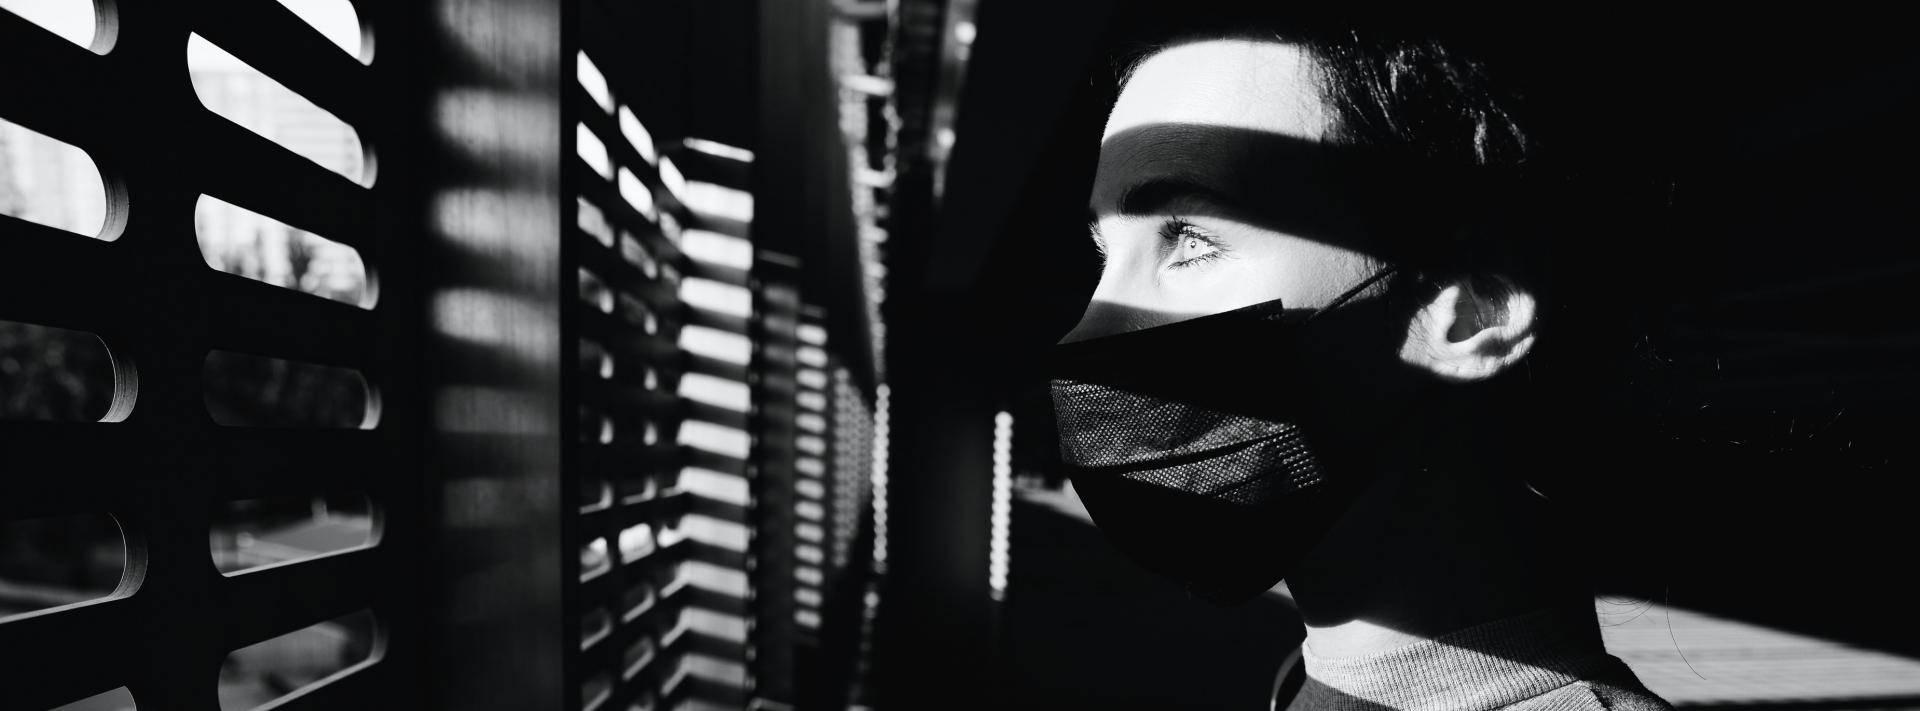 woman wearing mask while looking out blinds - black and white image